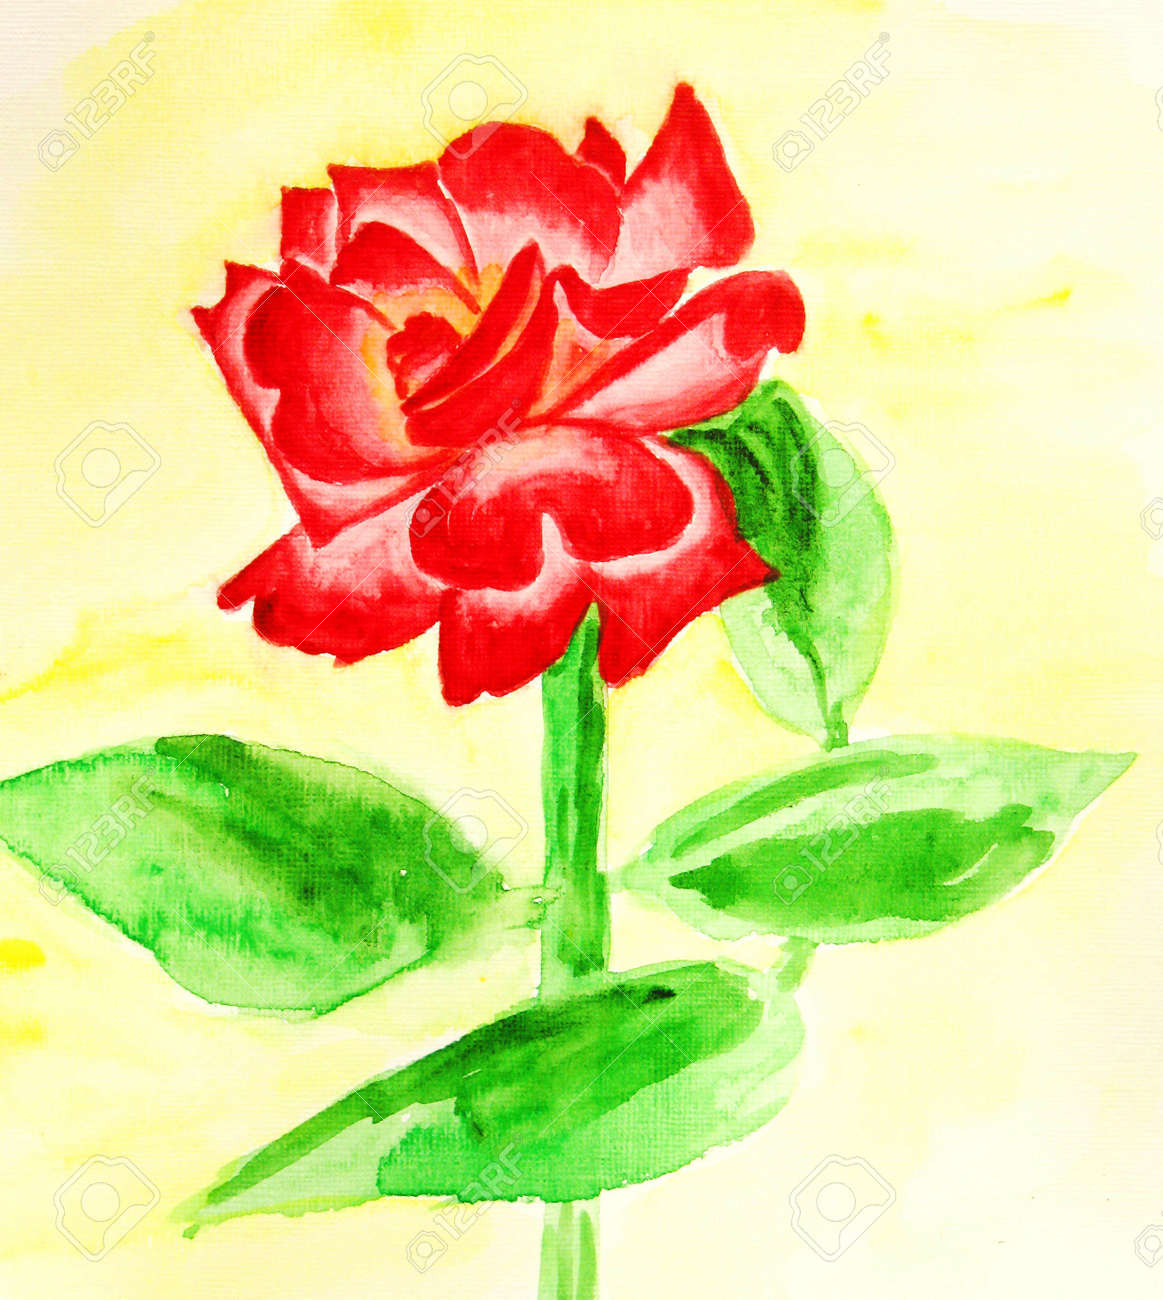 Hand drawn picture, watercolour - red rose on light yellow background. Stock Photo - 11512172